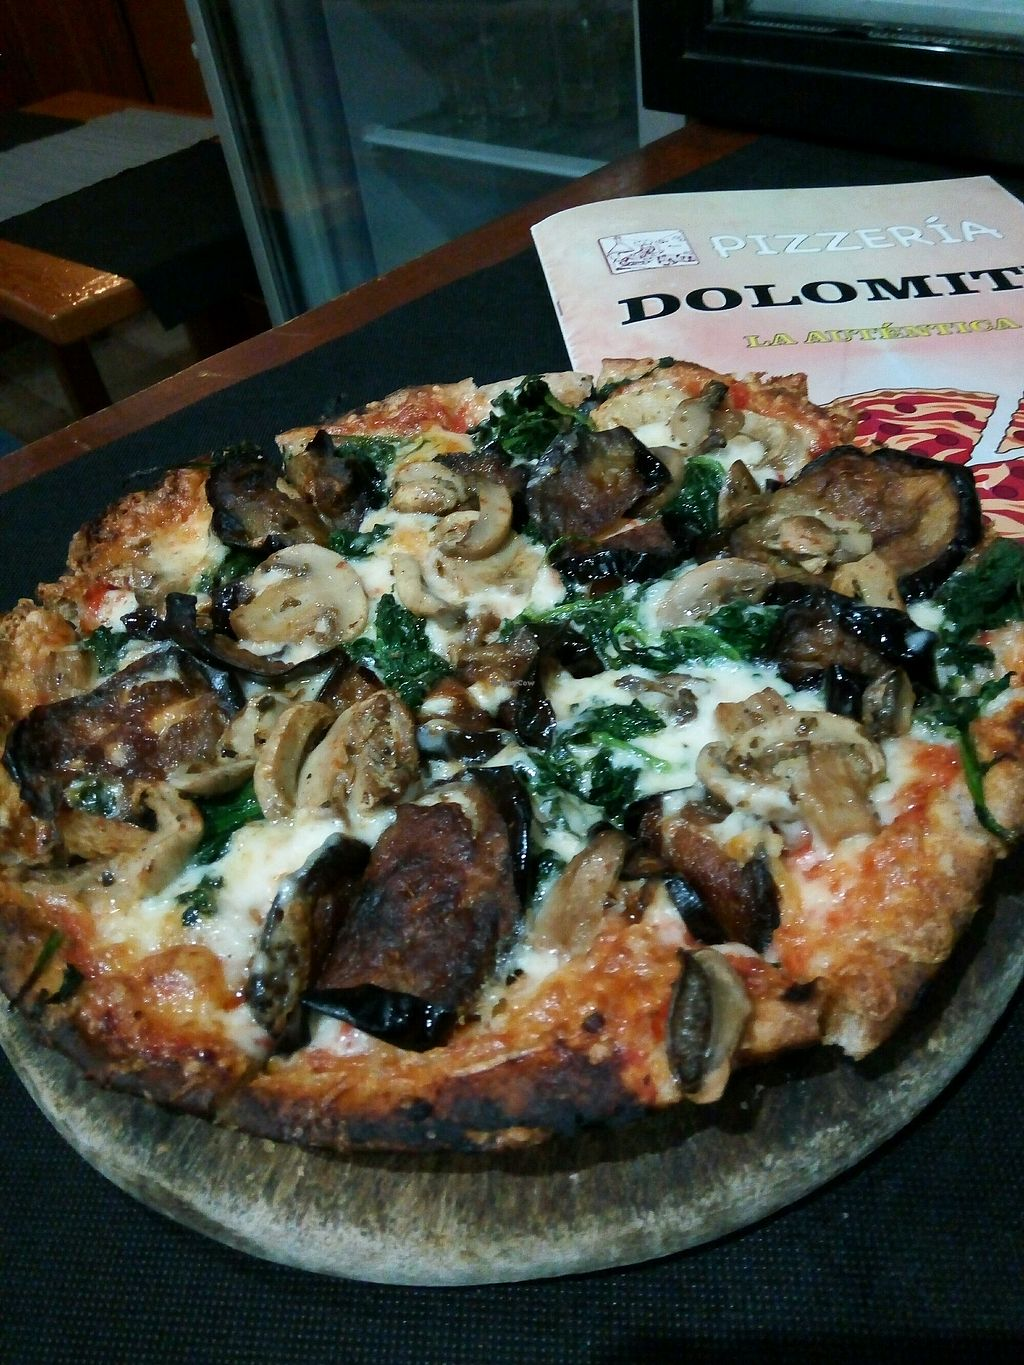 """Photo of Pizzeria Dolomiti  by <a href=""""/members/profile/Caracola"""">Caracola</a> <br/>pizza vegana arrabbiata <br/> March 7, 2018  - <a href='/contact/abuse/image/106718/367777'>Report</a>"""